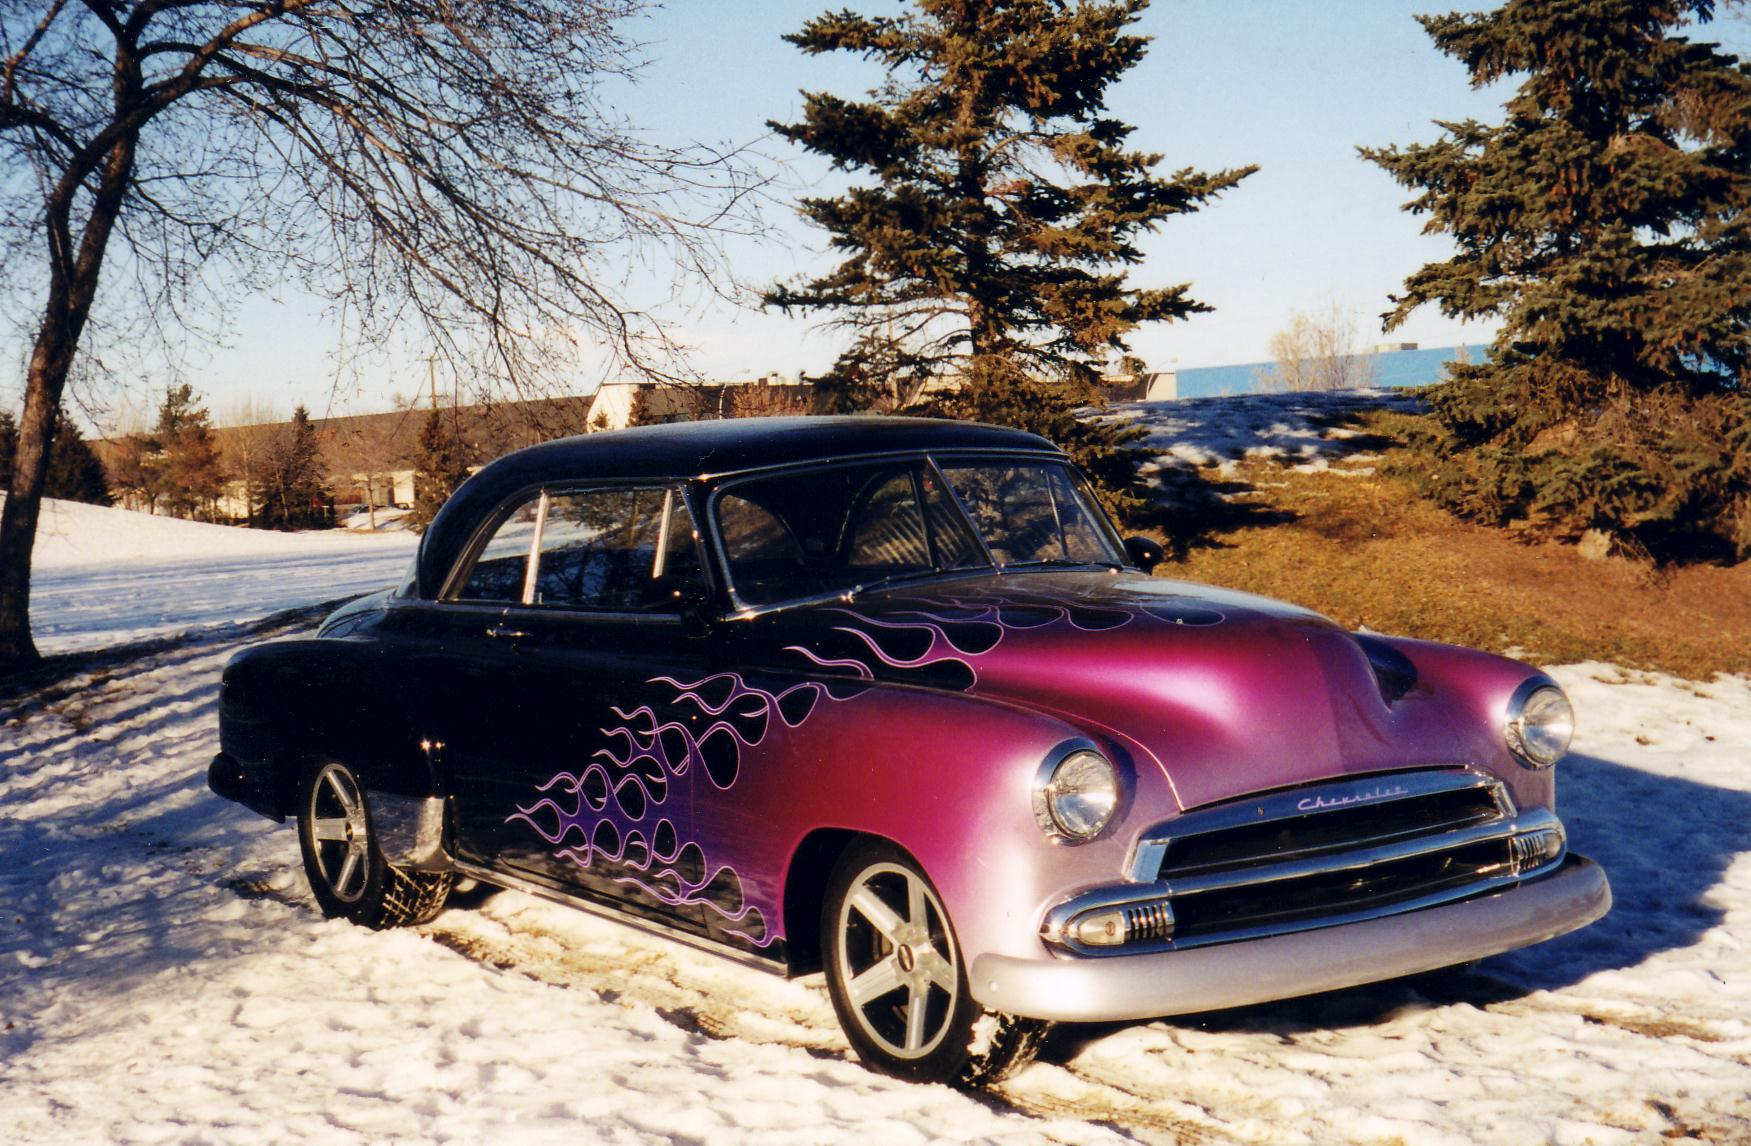 1951 Chevrolet Pernise